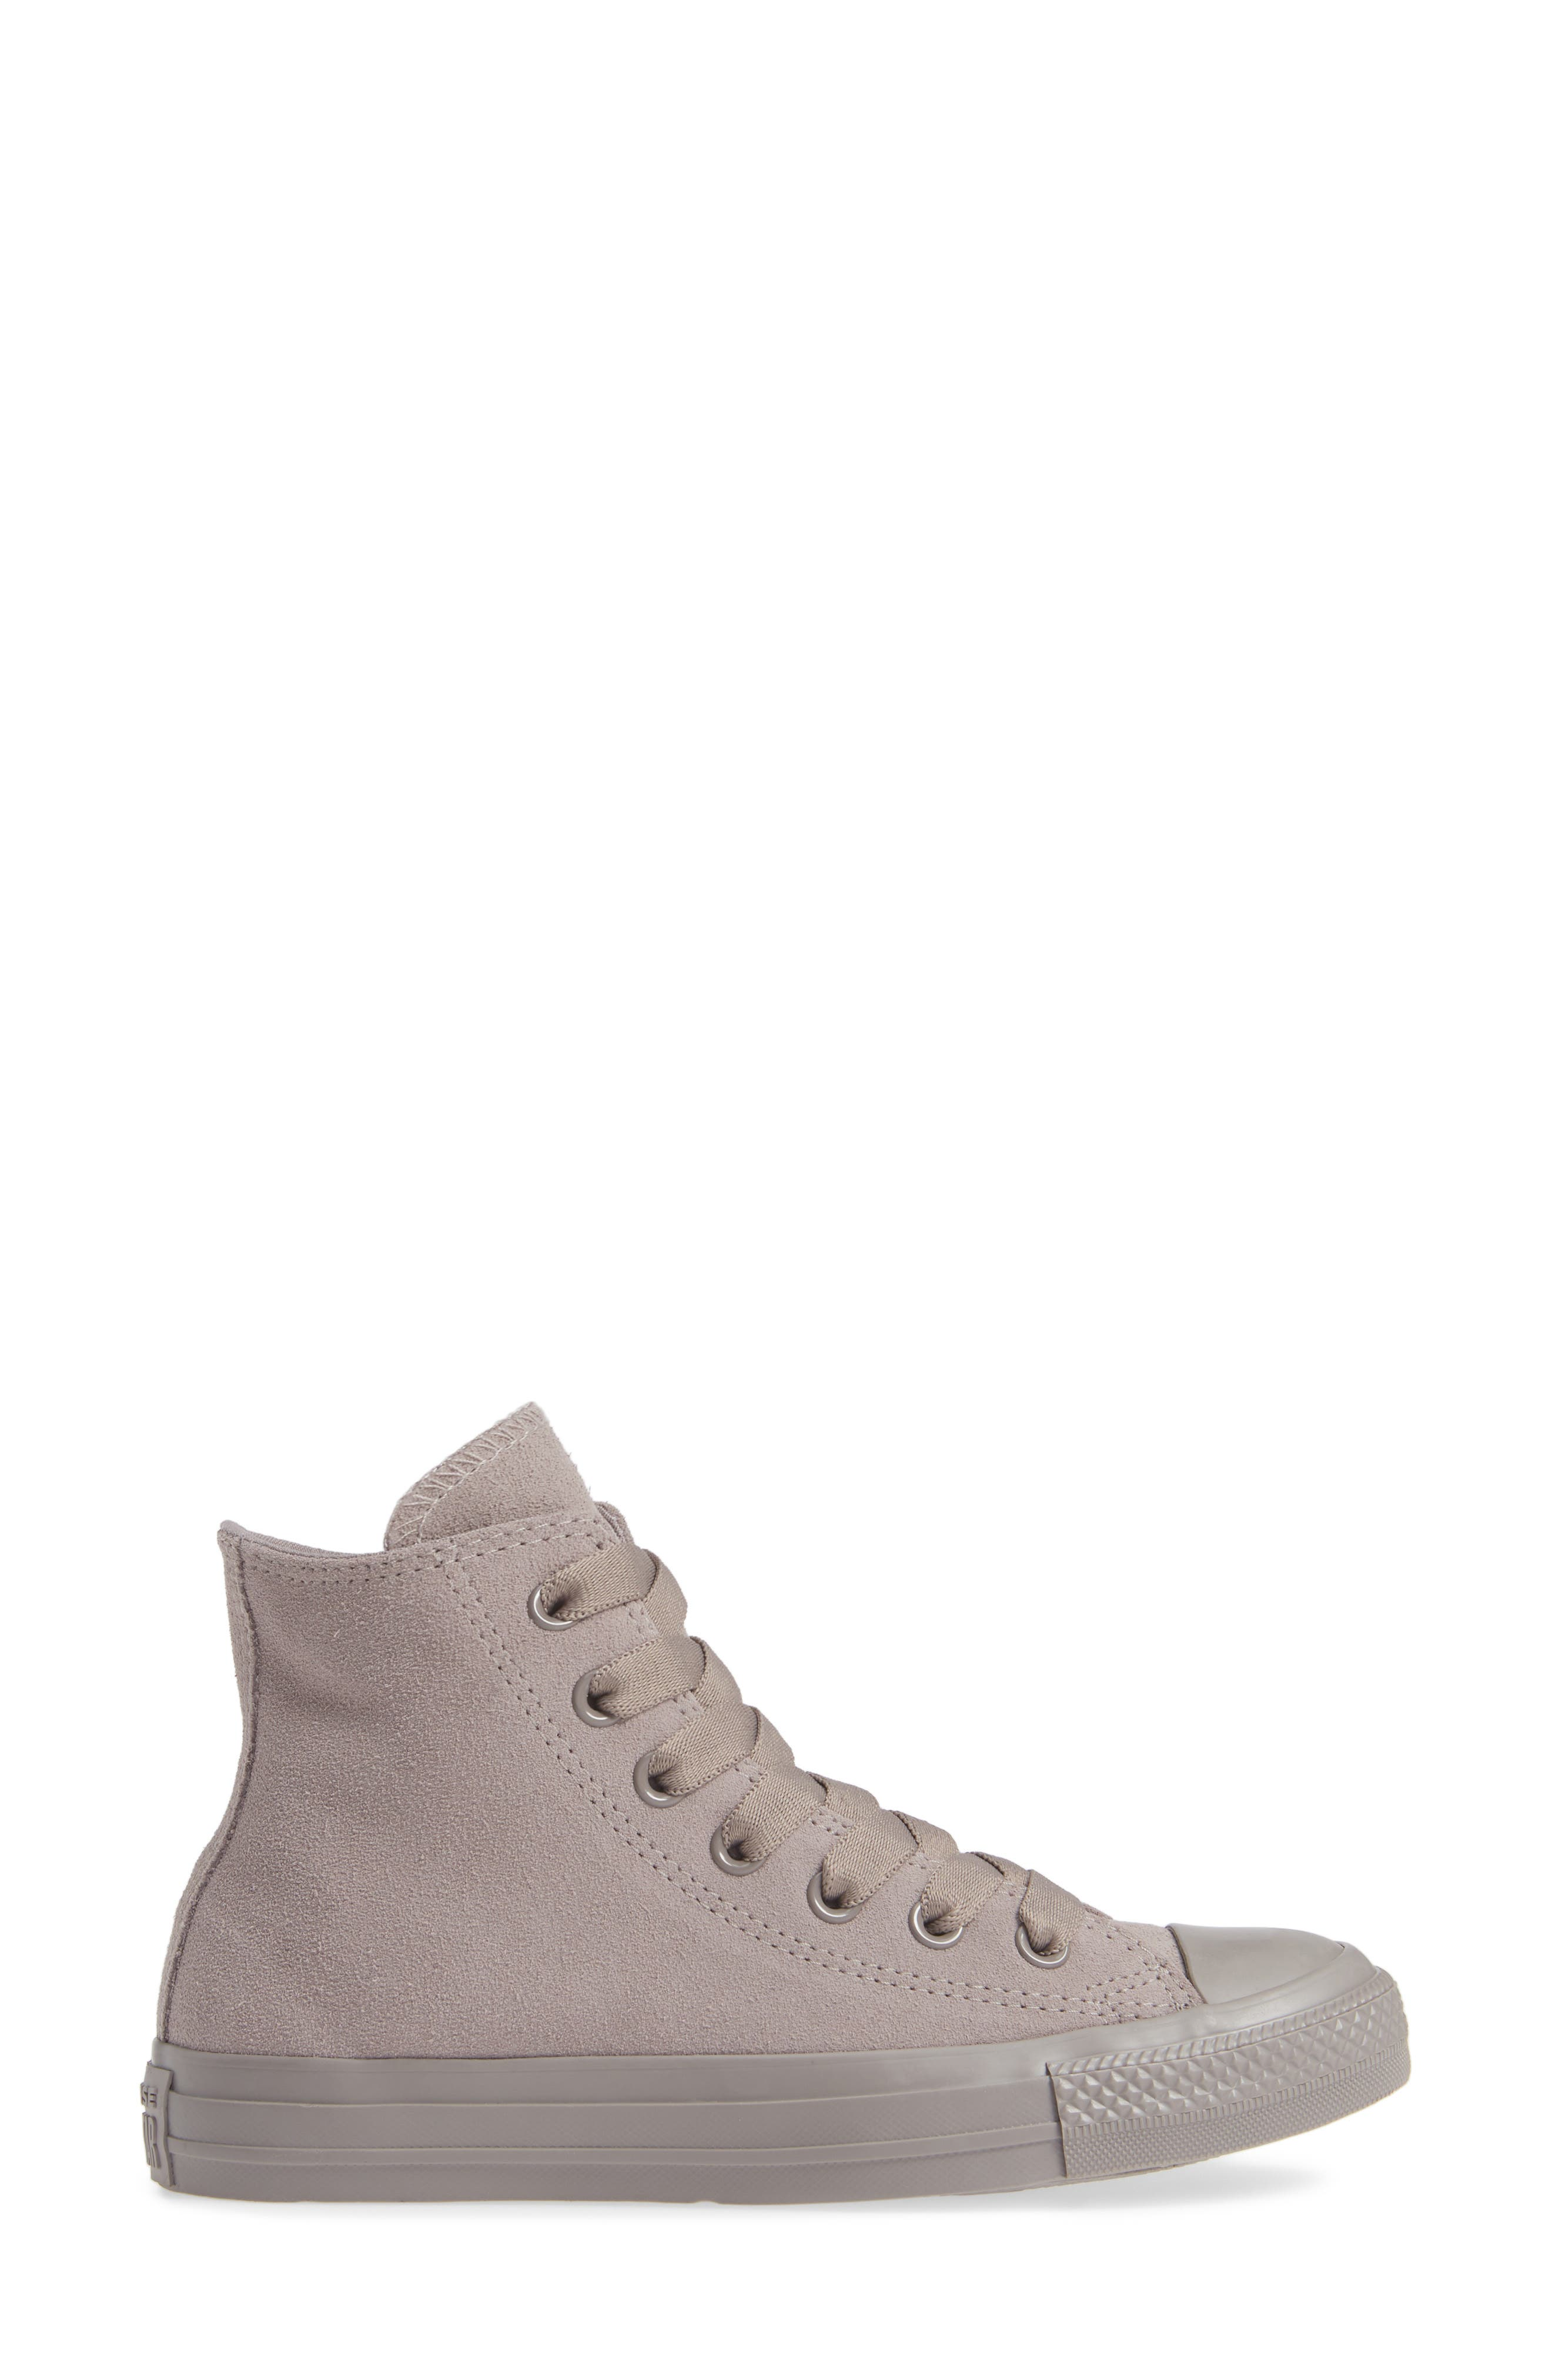 CONVERSE, Chuck Taylor<sup>®</sup> All Star<sup>®</sup> Hi Sneaker, Alternate thumbnail 3, color, MERCURY GREY SUEDE